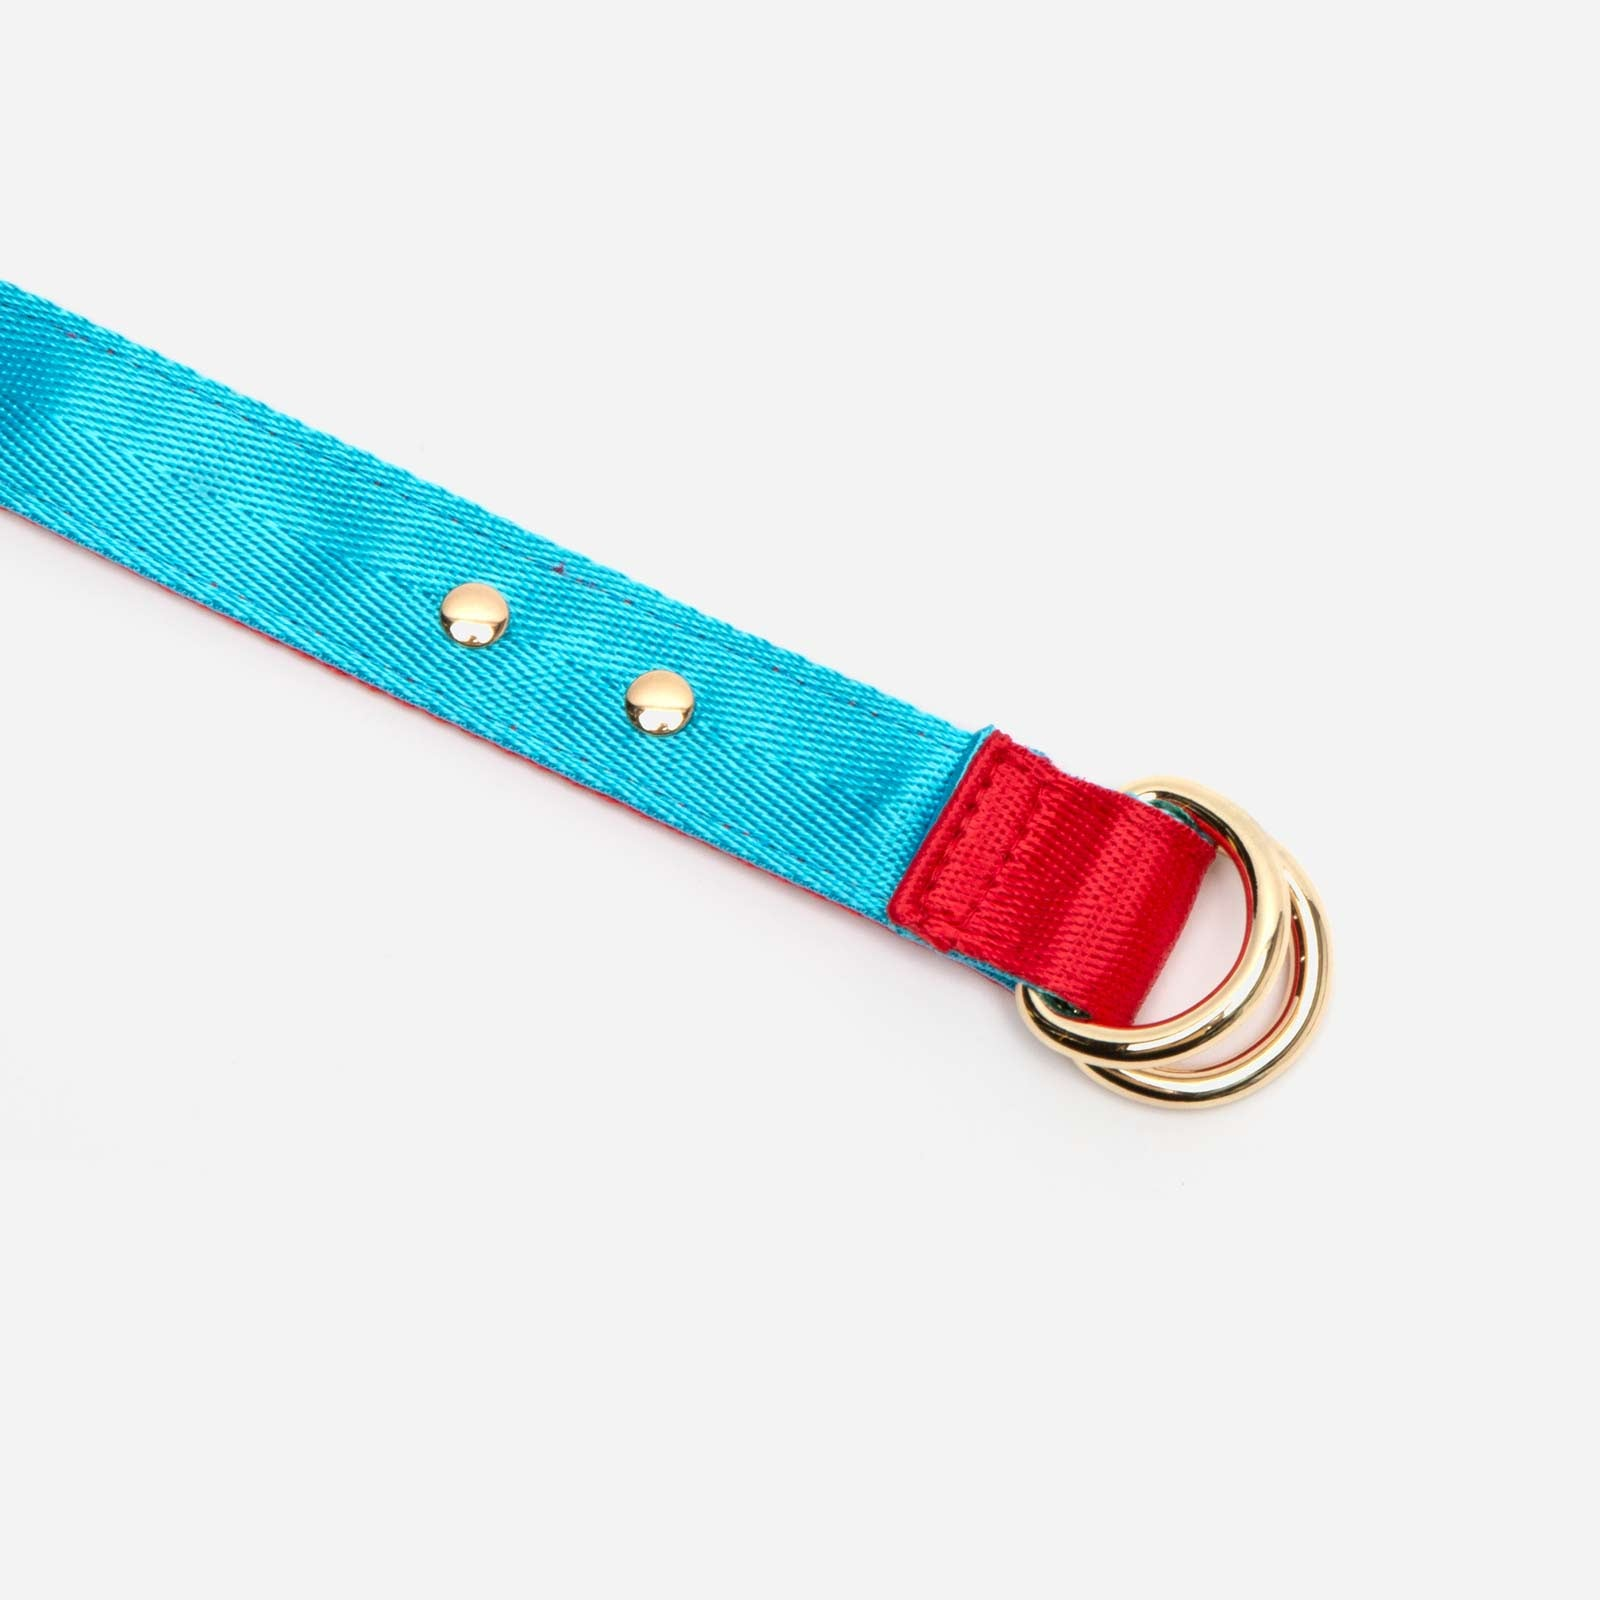 Reversible Webbing Belt Red Light Blue - Frances Valentine